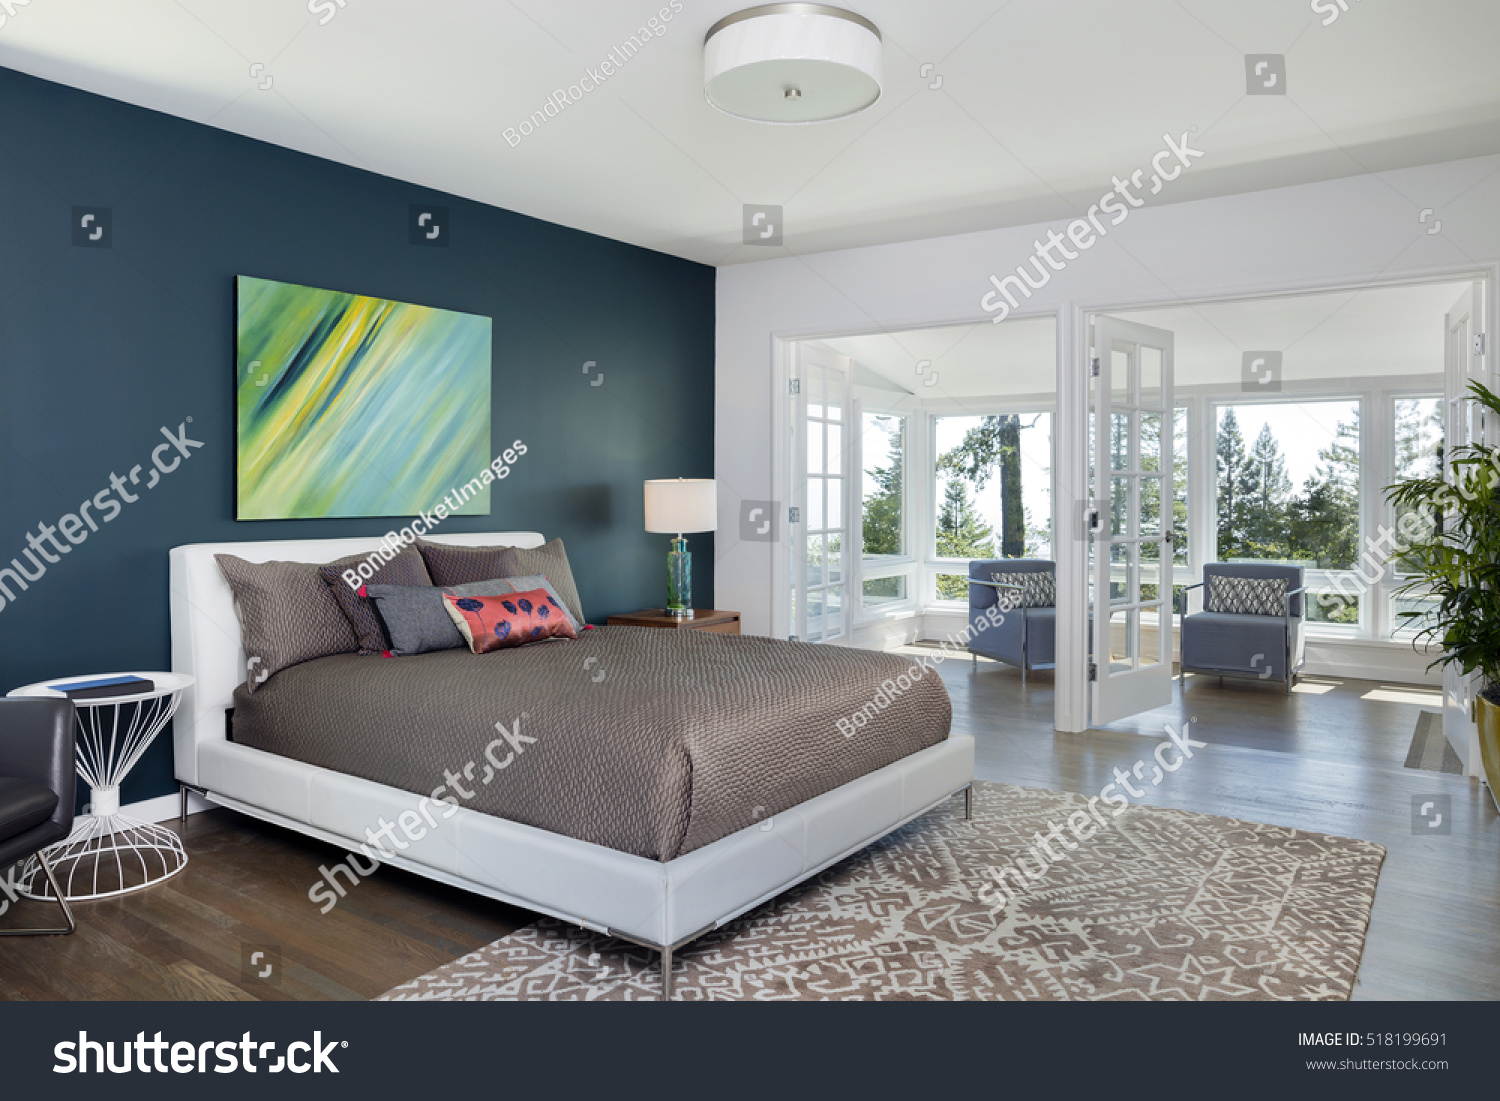 Open spacious bedroom with modern stylish furniture and double french doors. Open Spacious Bedroom Modern Stylish Furniture Stock Photo